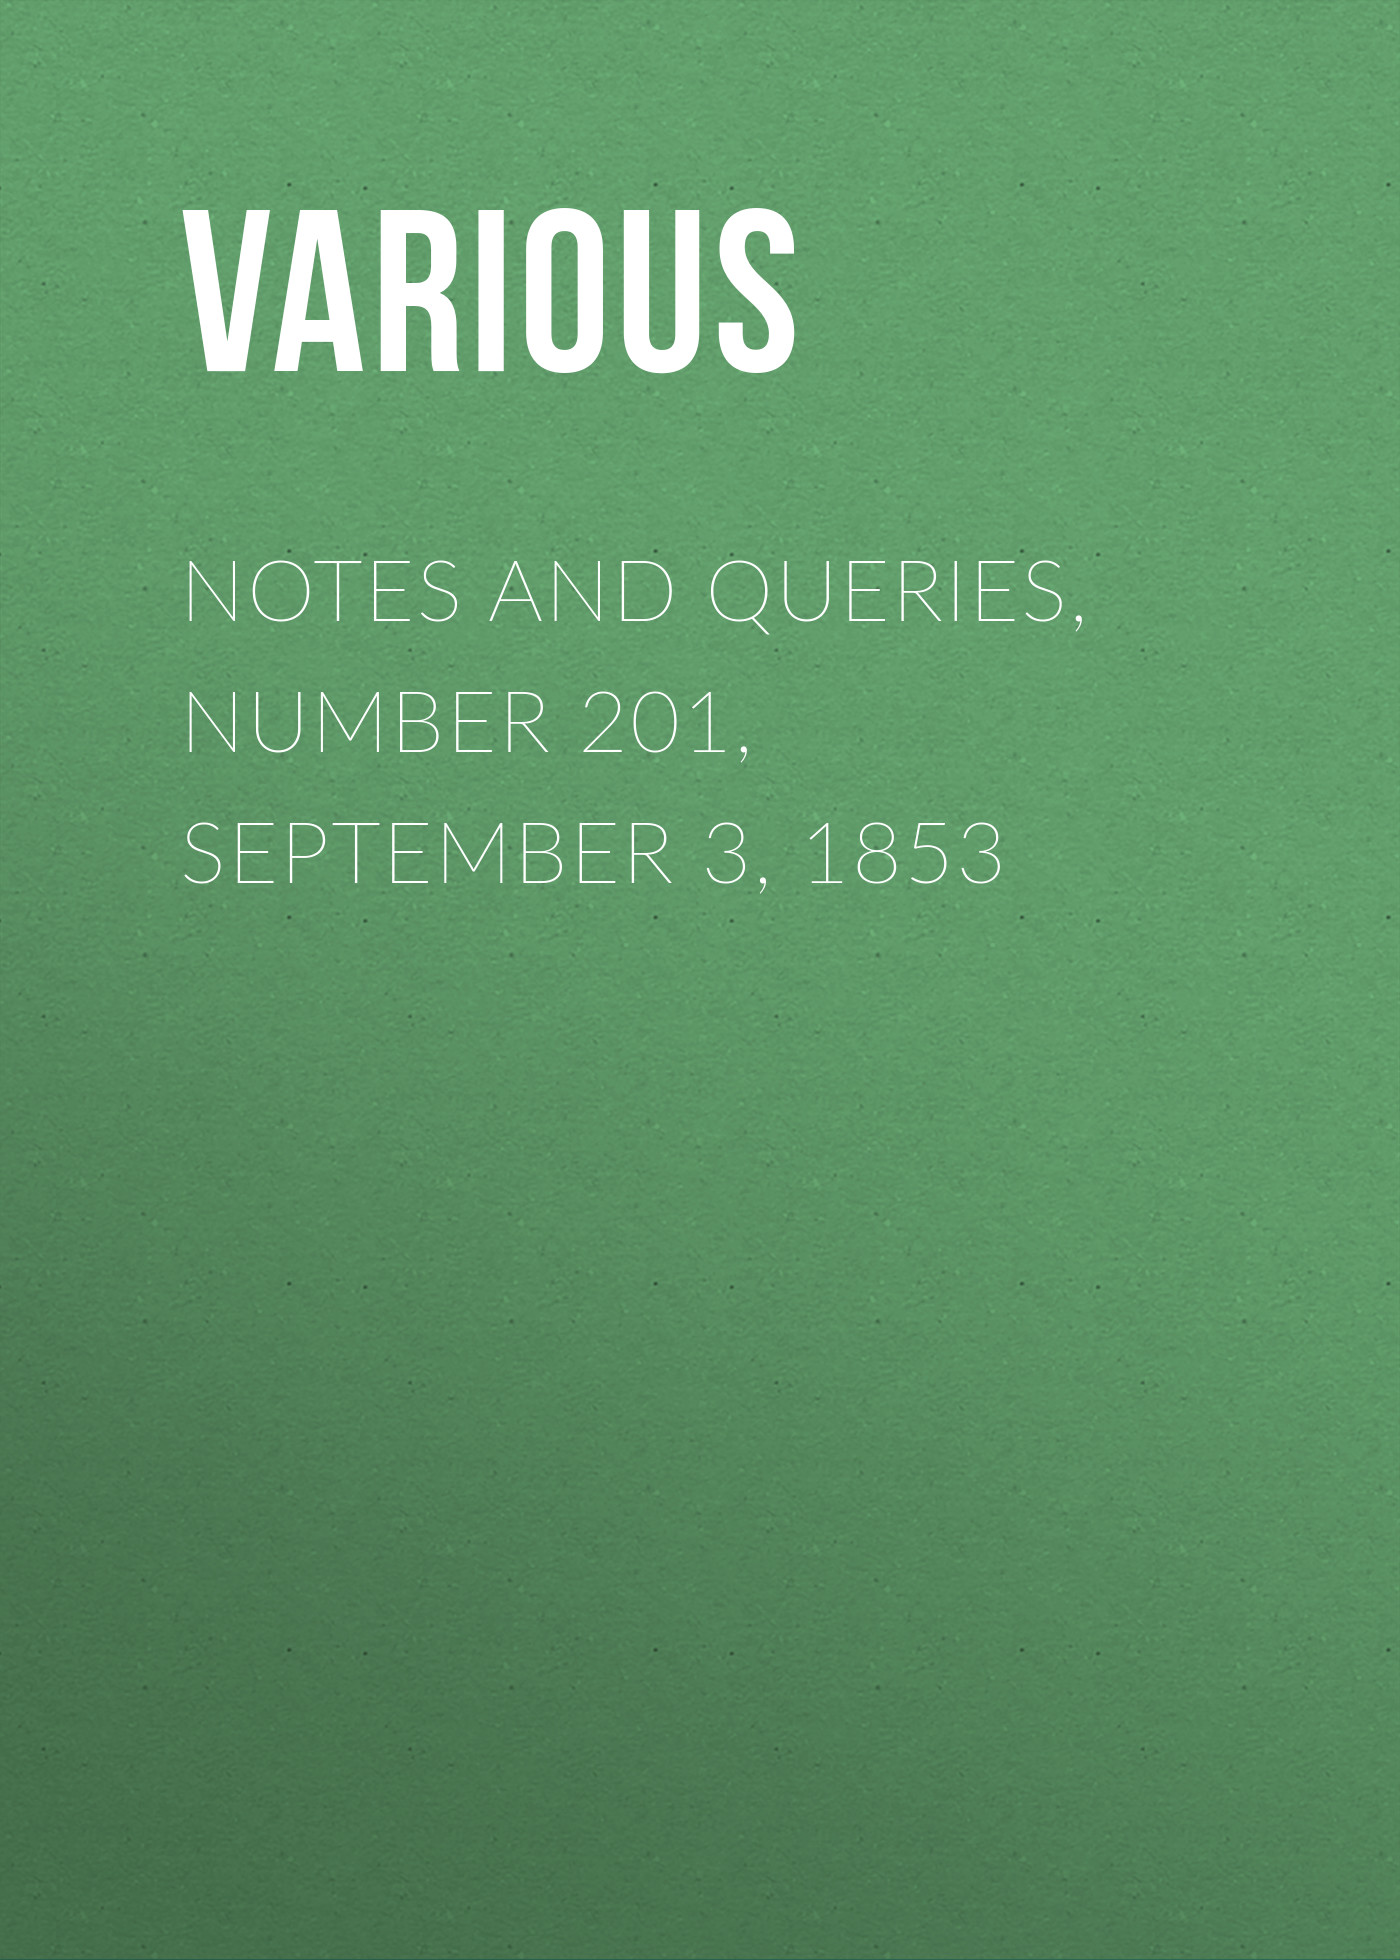 Various Notes and Queries, Number 201, September 3, 1853